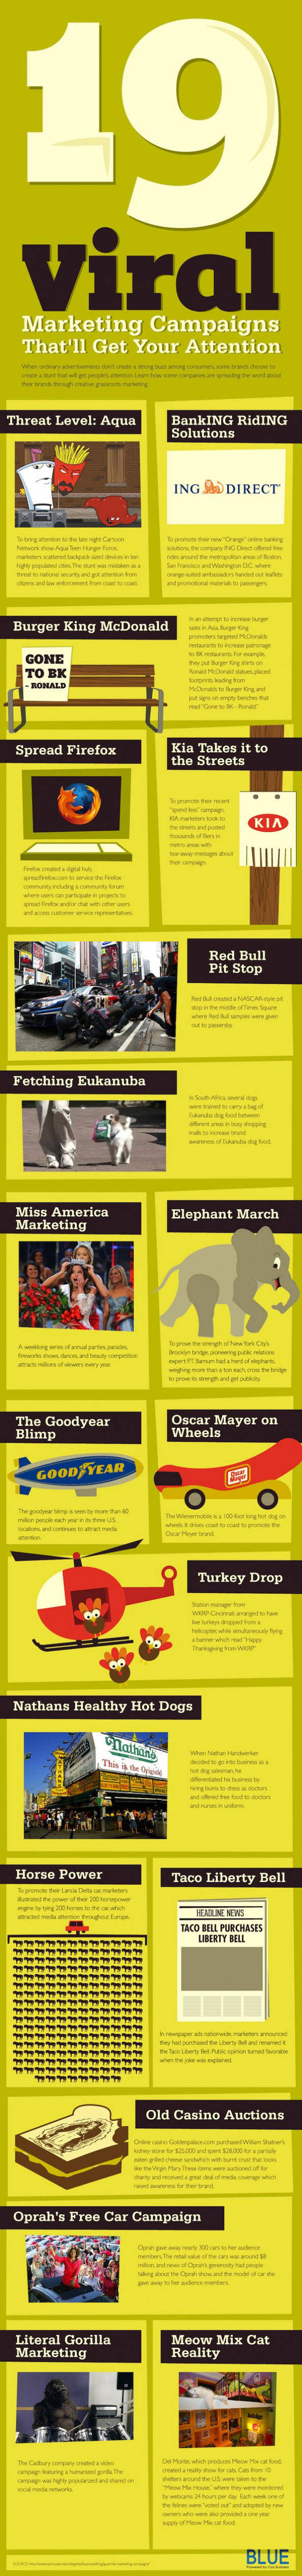 19 Viral Marketing Campaigns That Get Your Attention Infographic